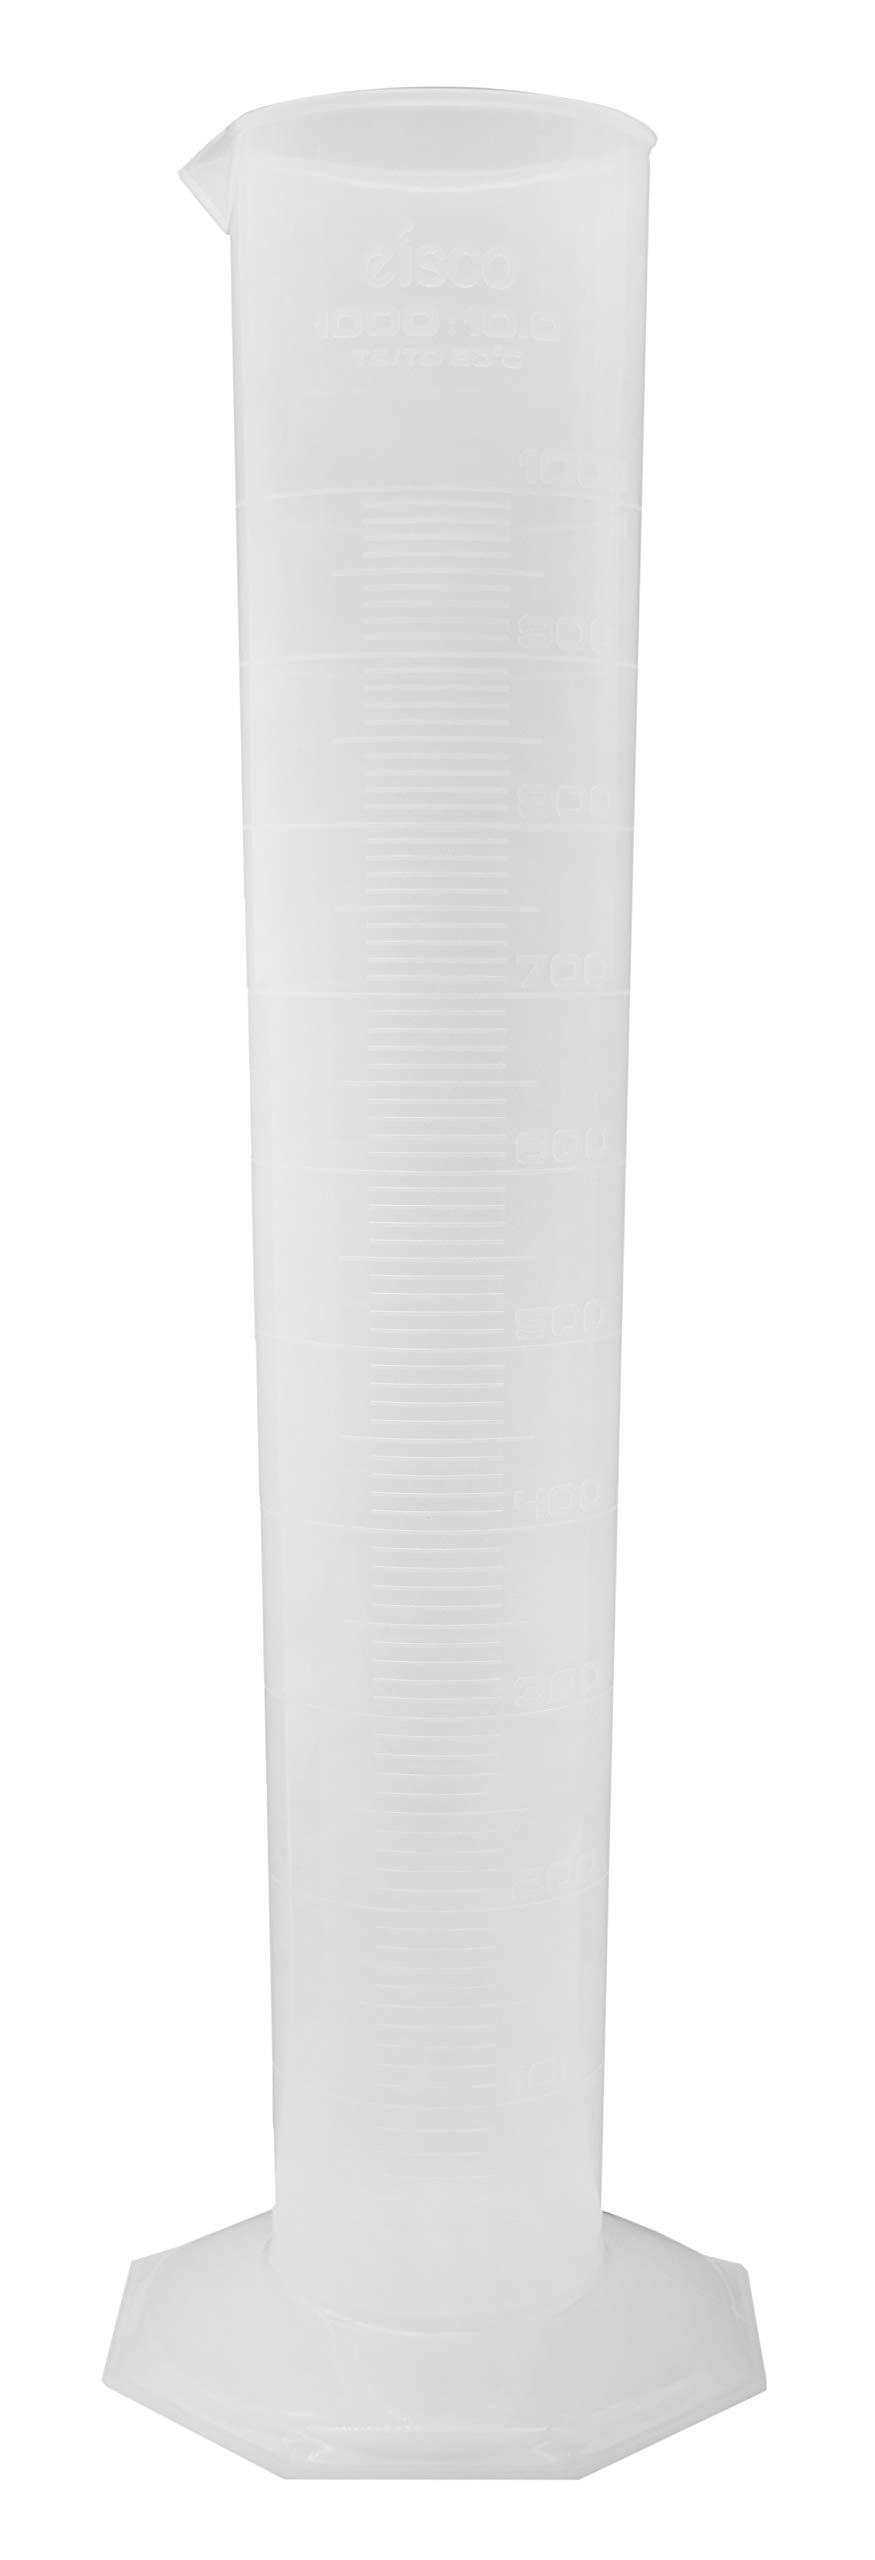 Measuring Cylinder, 1000ml - Class B - Polypropylene, Octagonal Base - US Sourced Plastic - Industrial Quality, Autoclavable - Eisco Labs by EISCO